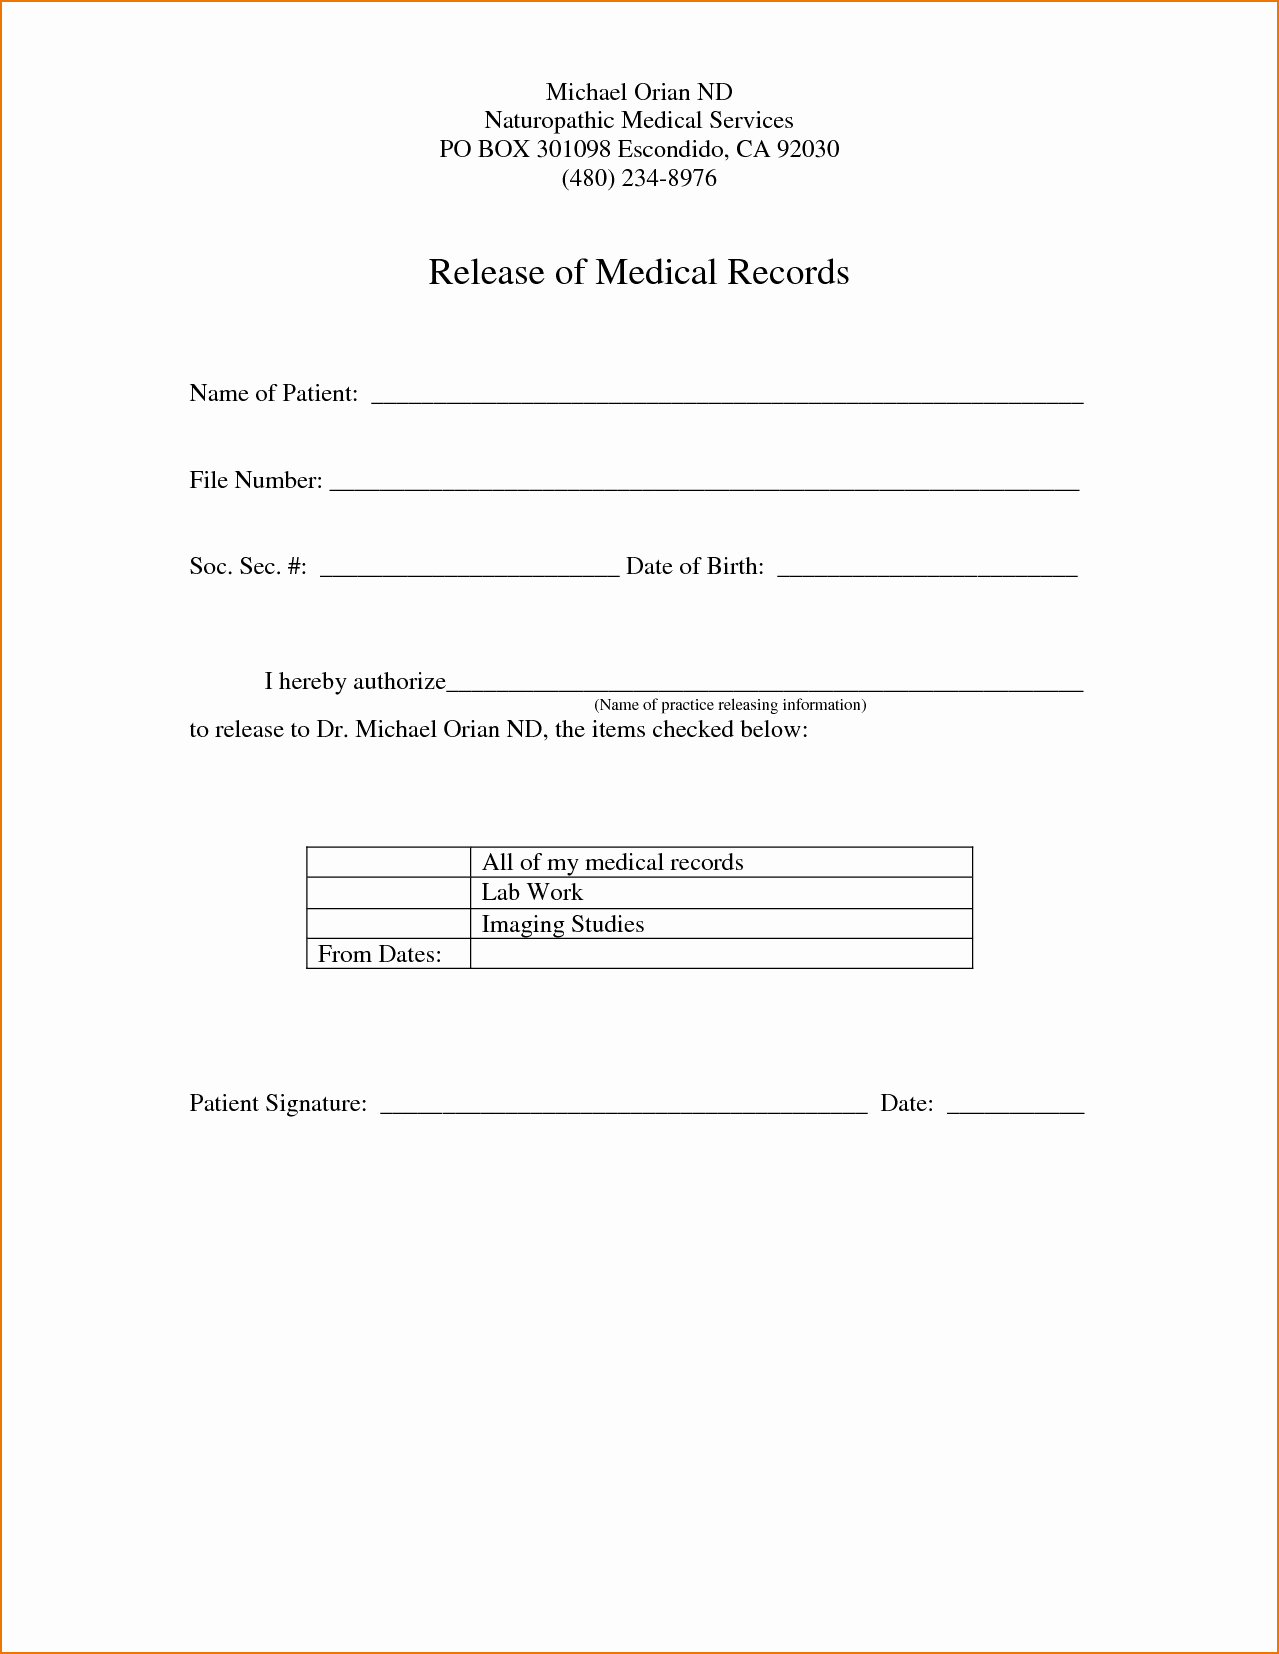 Medication Release form Template Inspirational Medical Record Release form Template